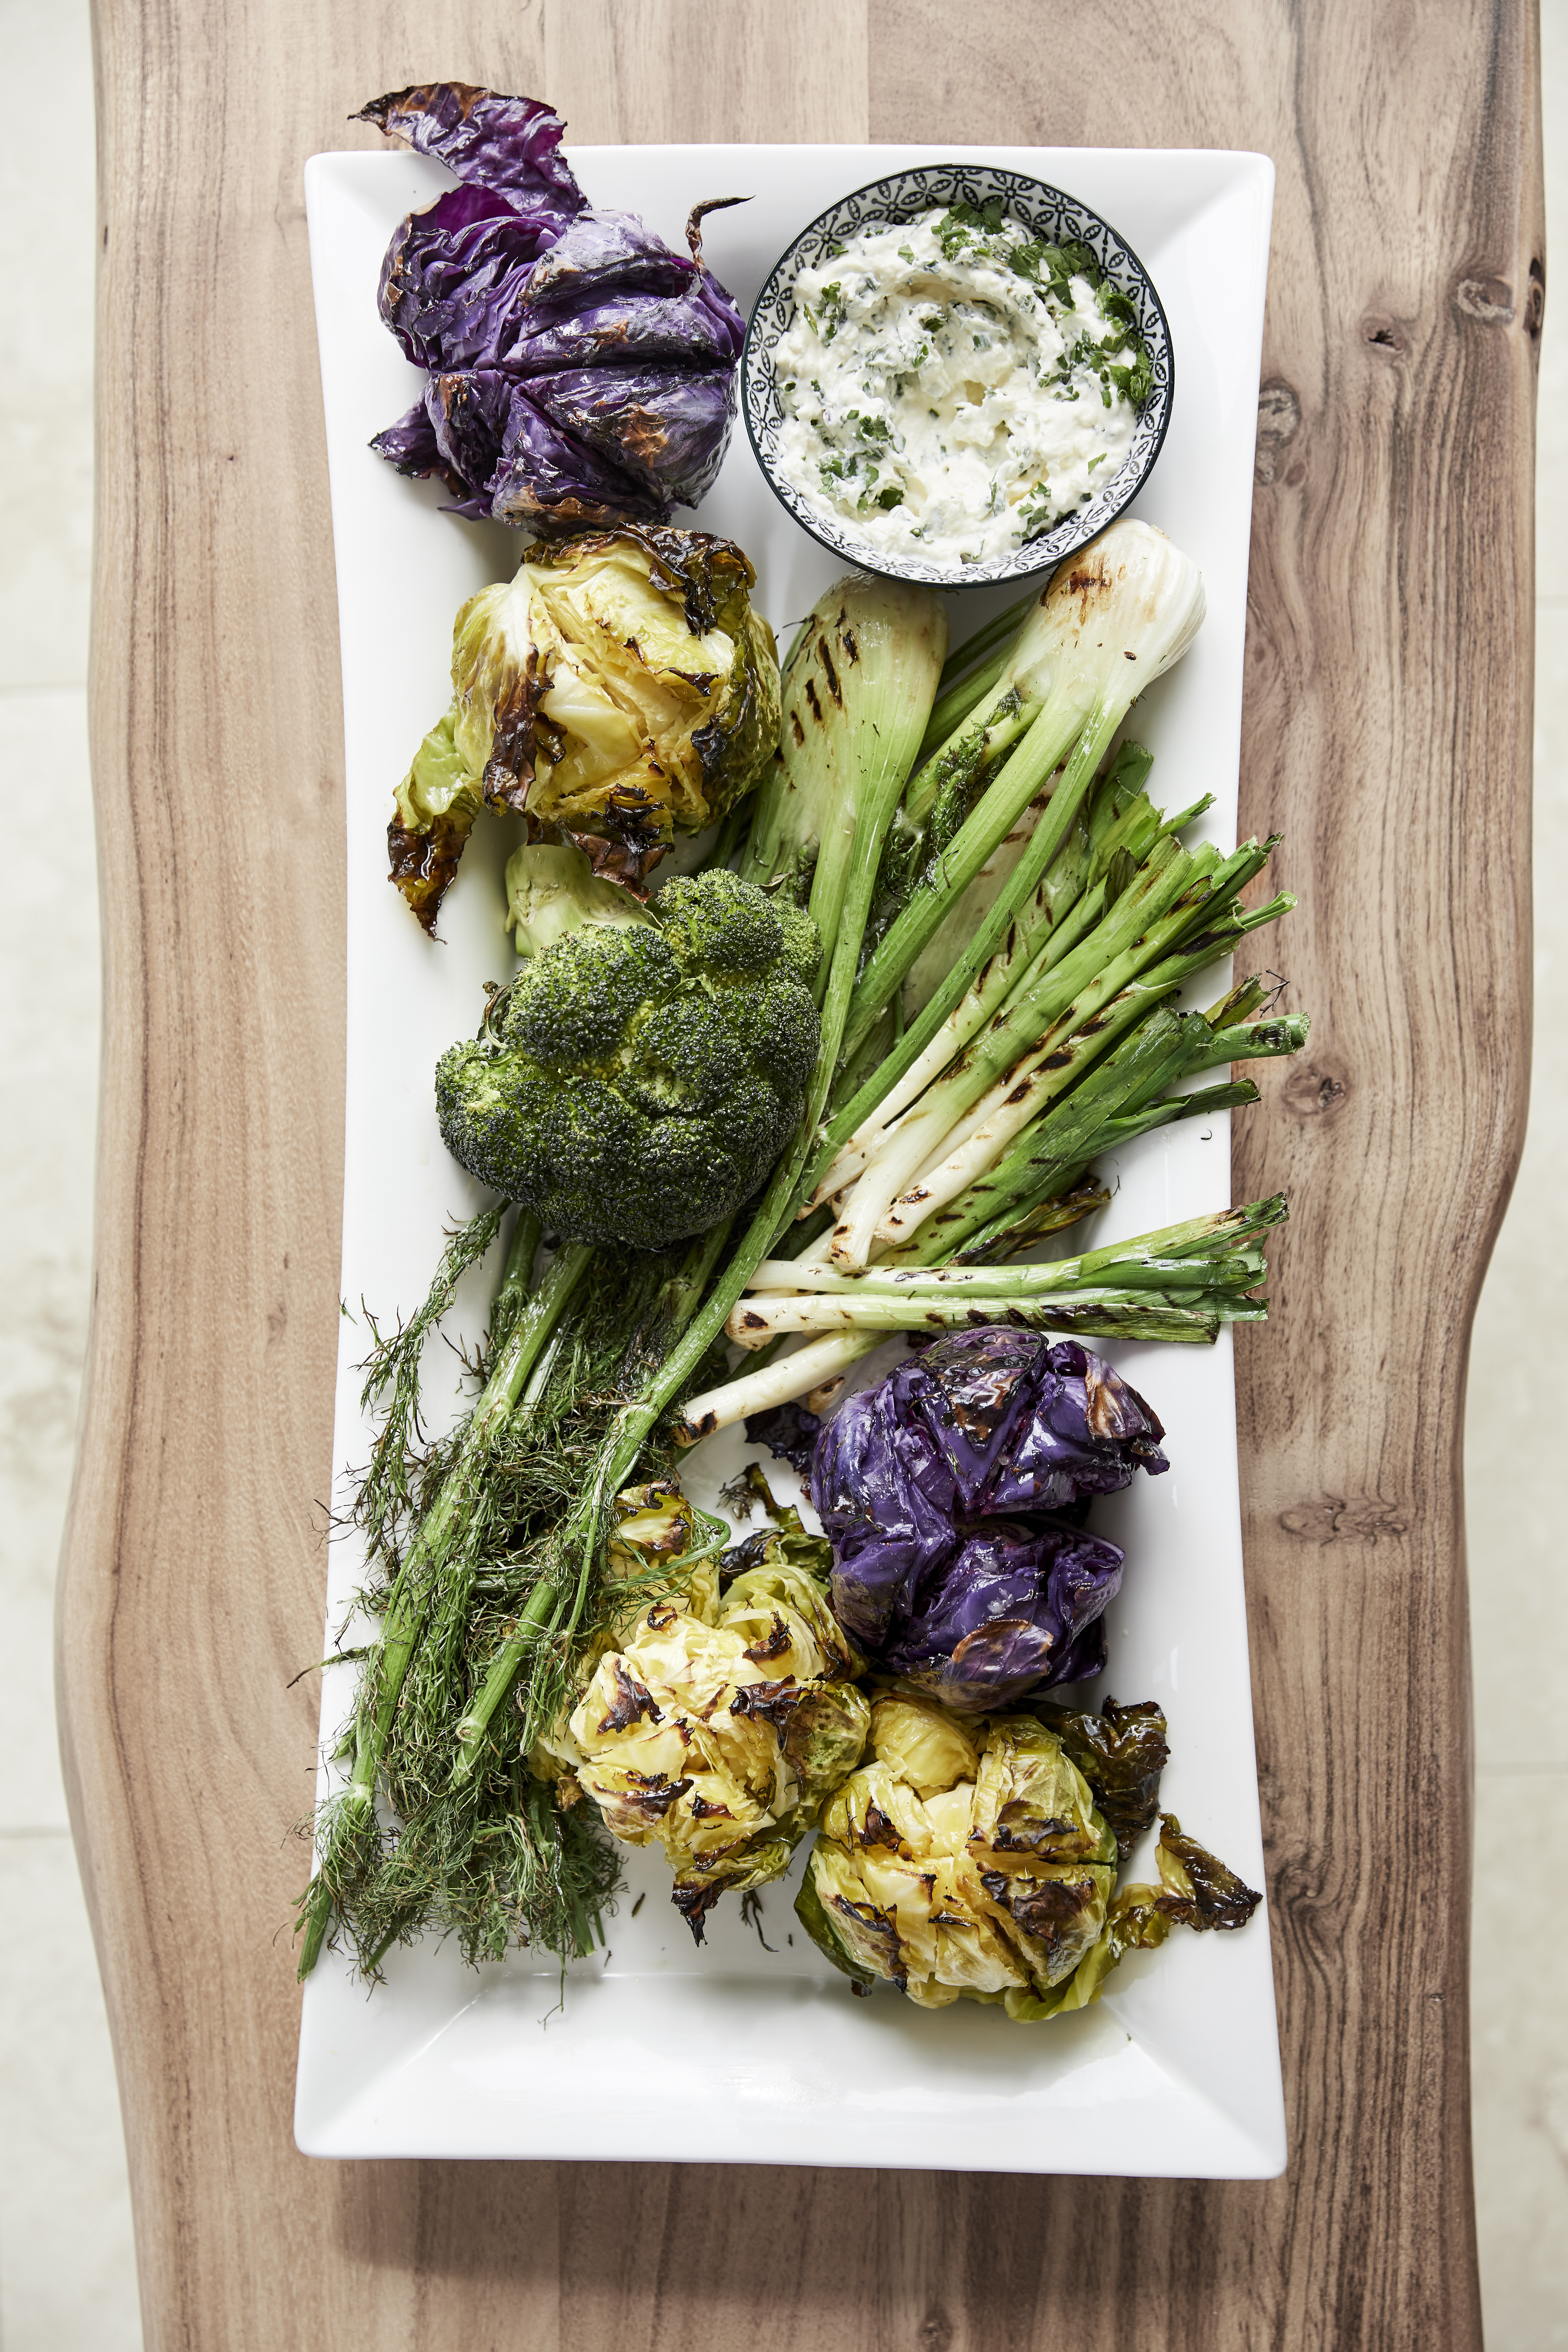 WHOLE ROASTED FENNEL, BROCCOLI AND CABBAGE WITH A FETA AND HERB DIP